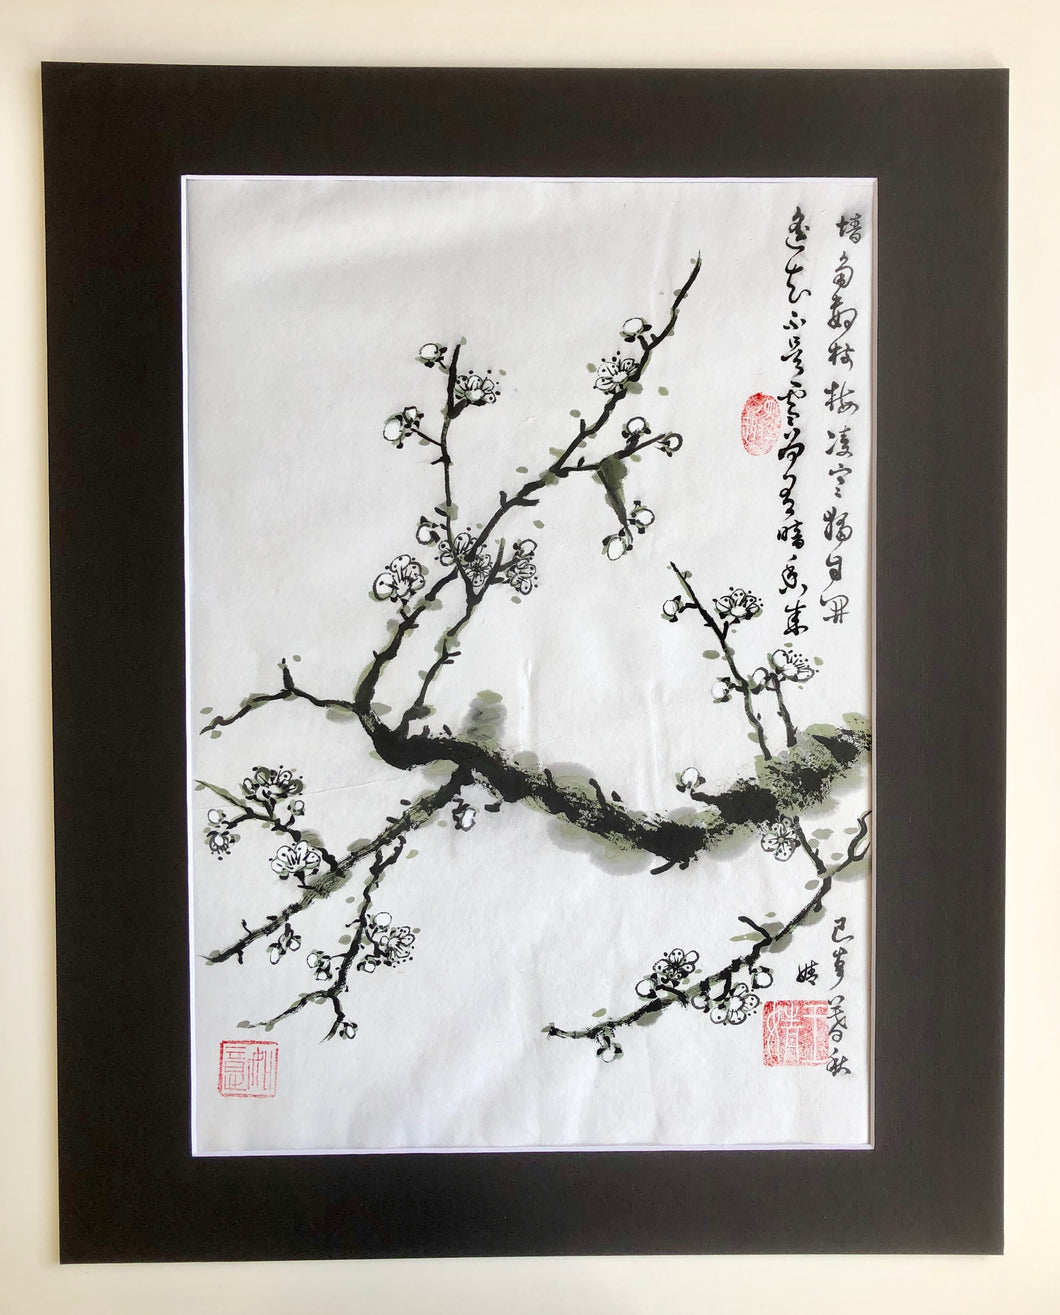 Plum Blossoms Inspired by Wang Anshi's Poem (Original)